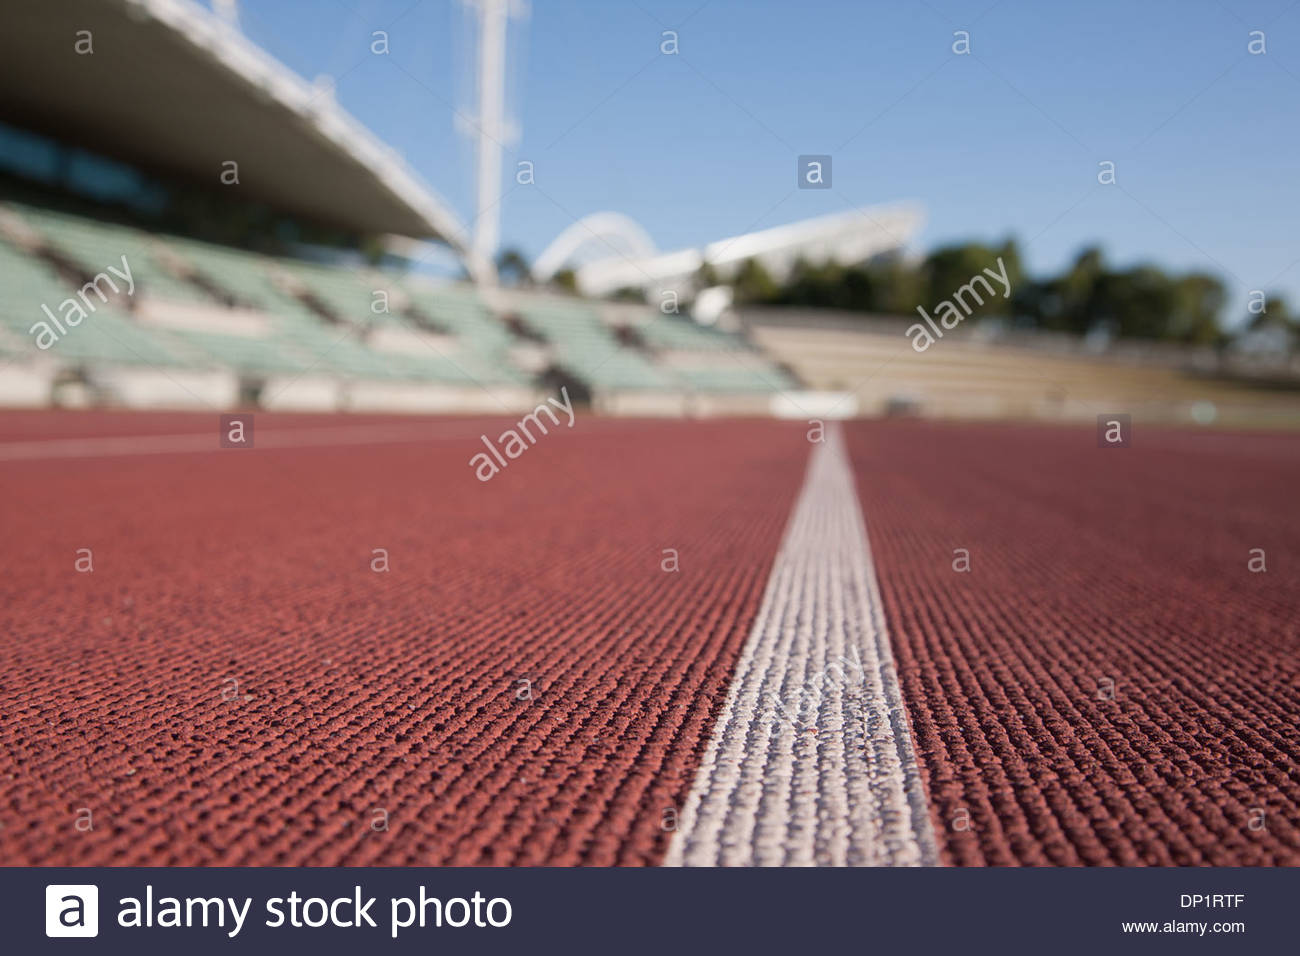 Stadium and racetrack - Stock Image